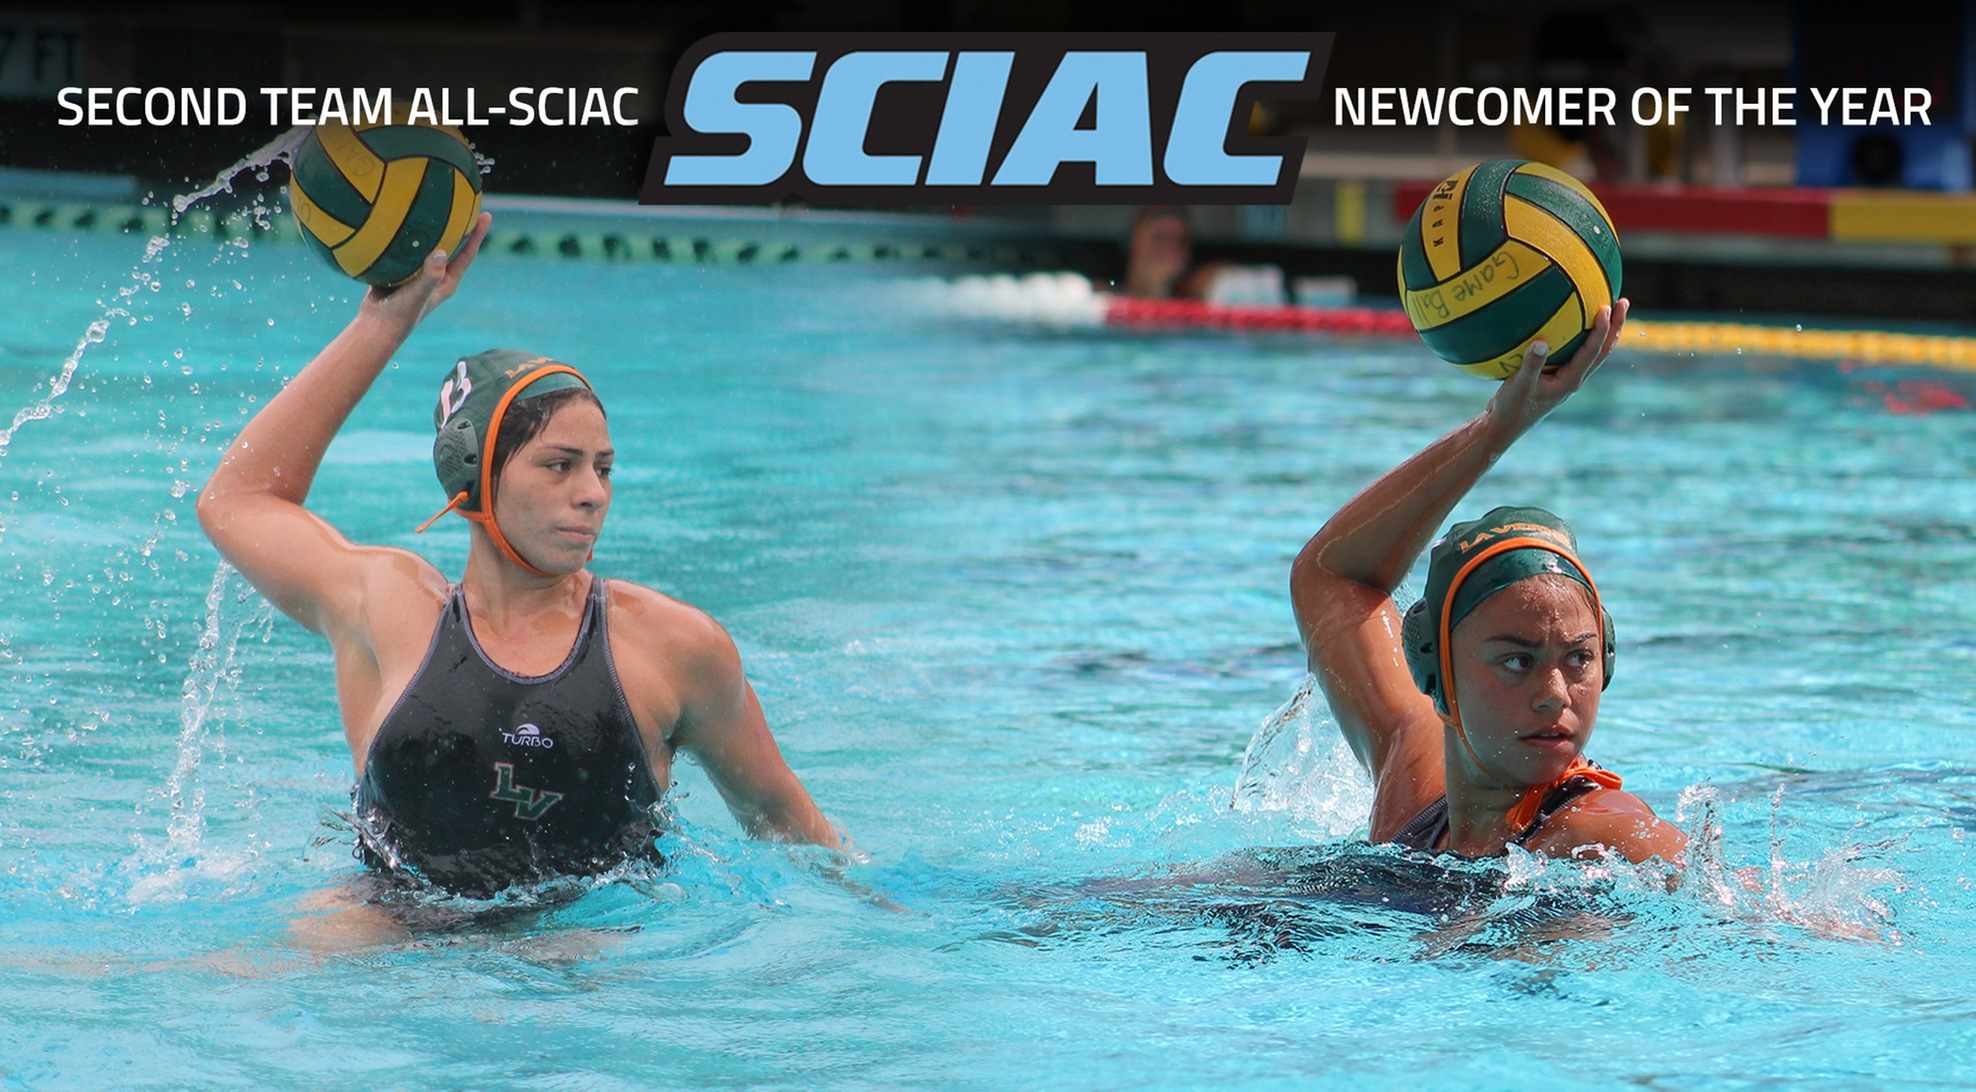 Kezman named Newcomer of the Year, Bustamante tabbed All-SCIAC